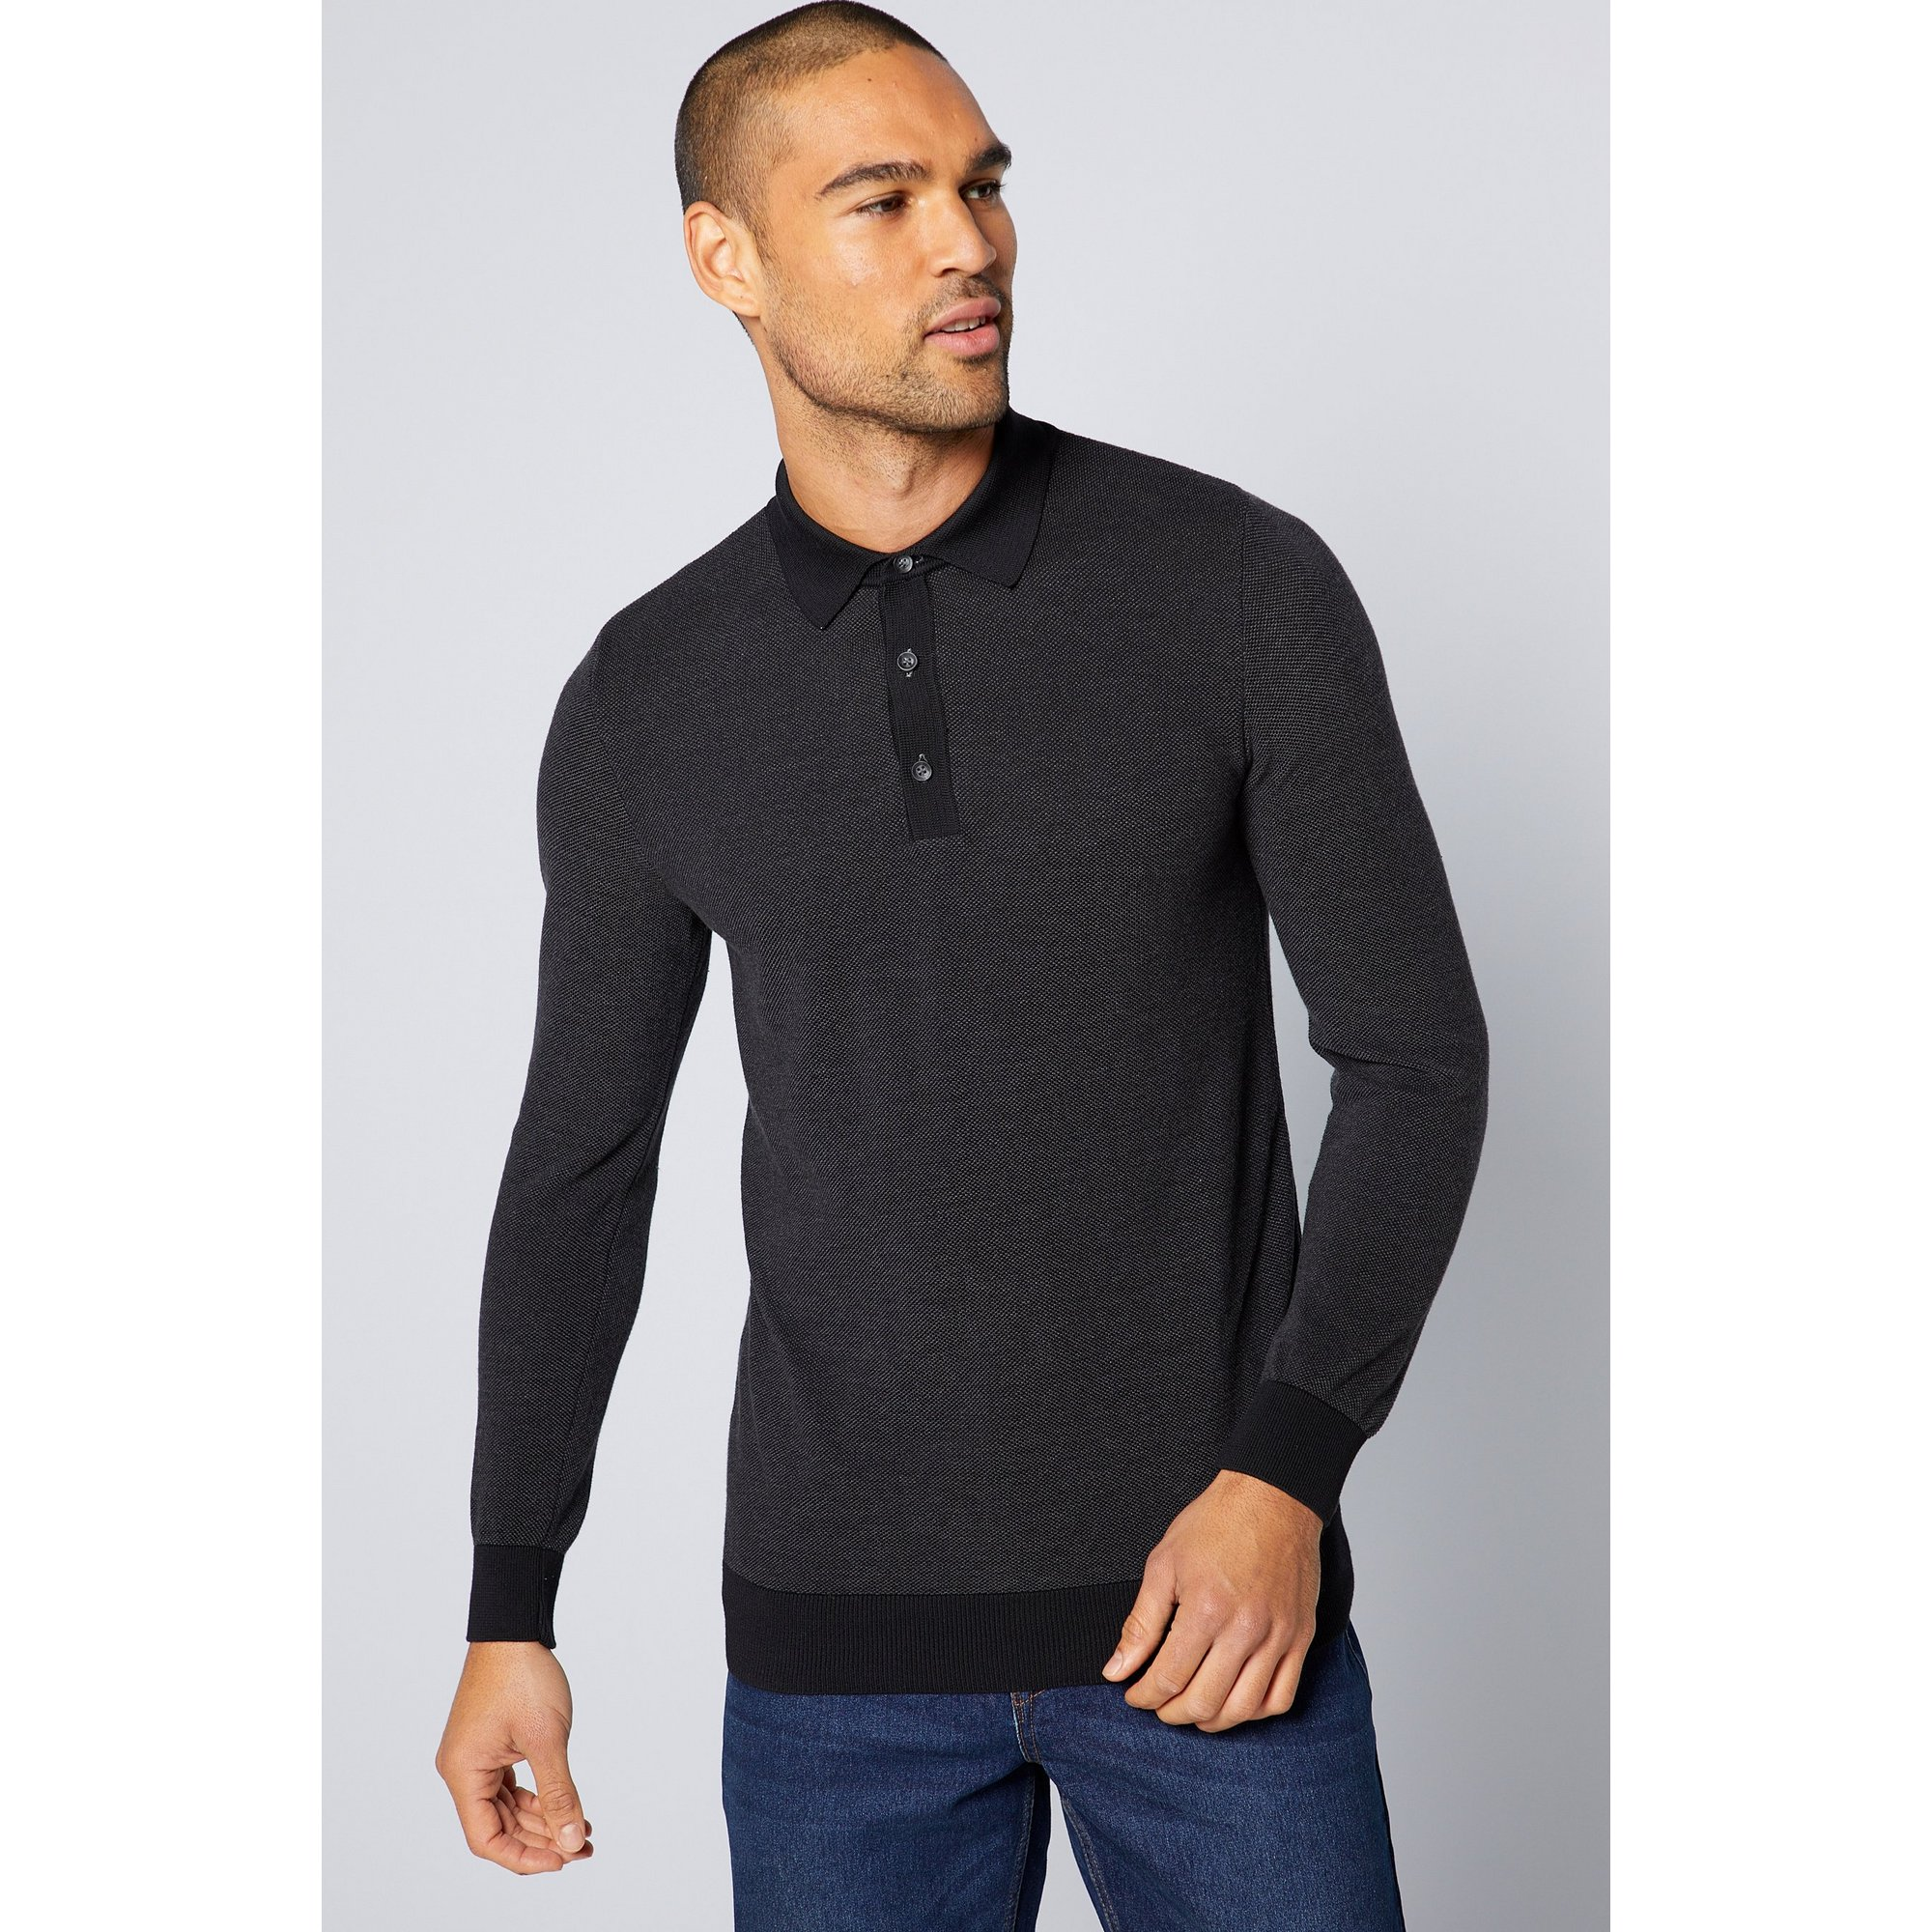 Image of Bewley and Ritch Long Sleeve Buttoned Black Polo Shirt